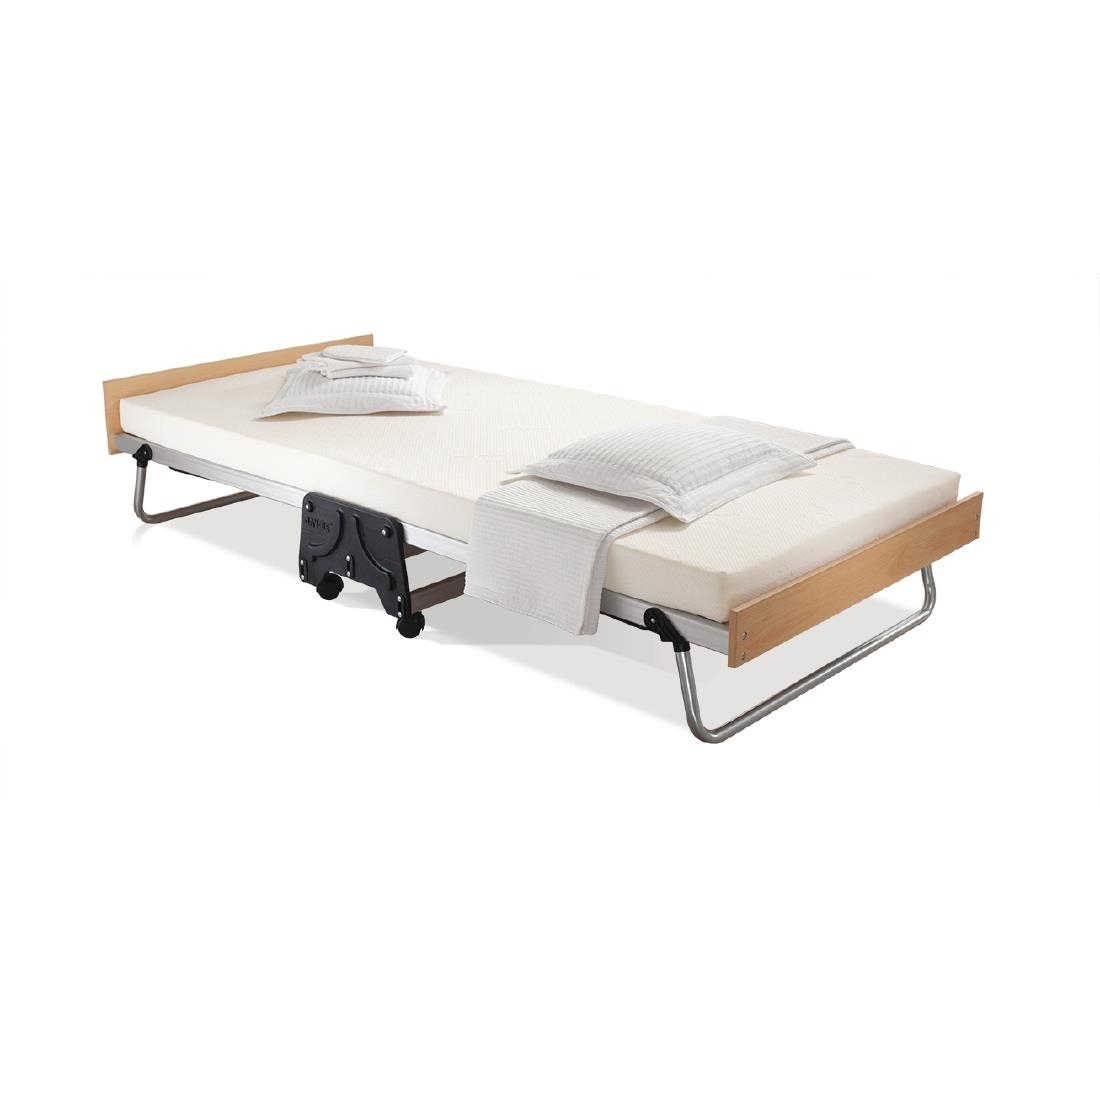 Image of Jay-Be Contract Folding Bed with Memory Foam Mattress Single in Silver Colour